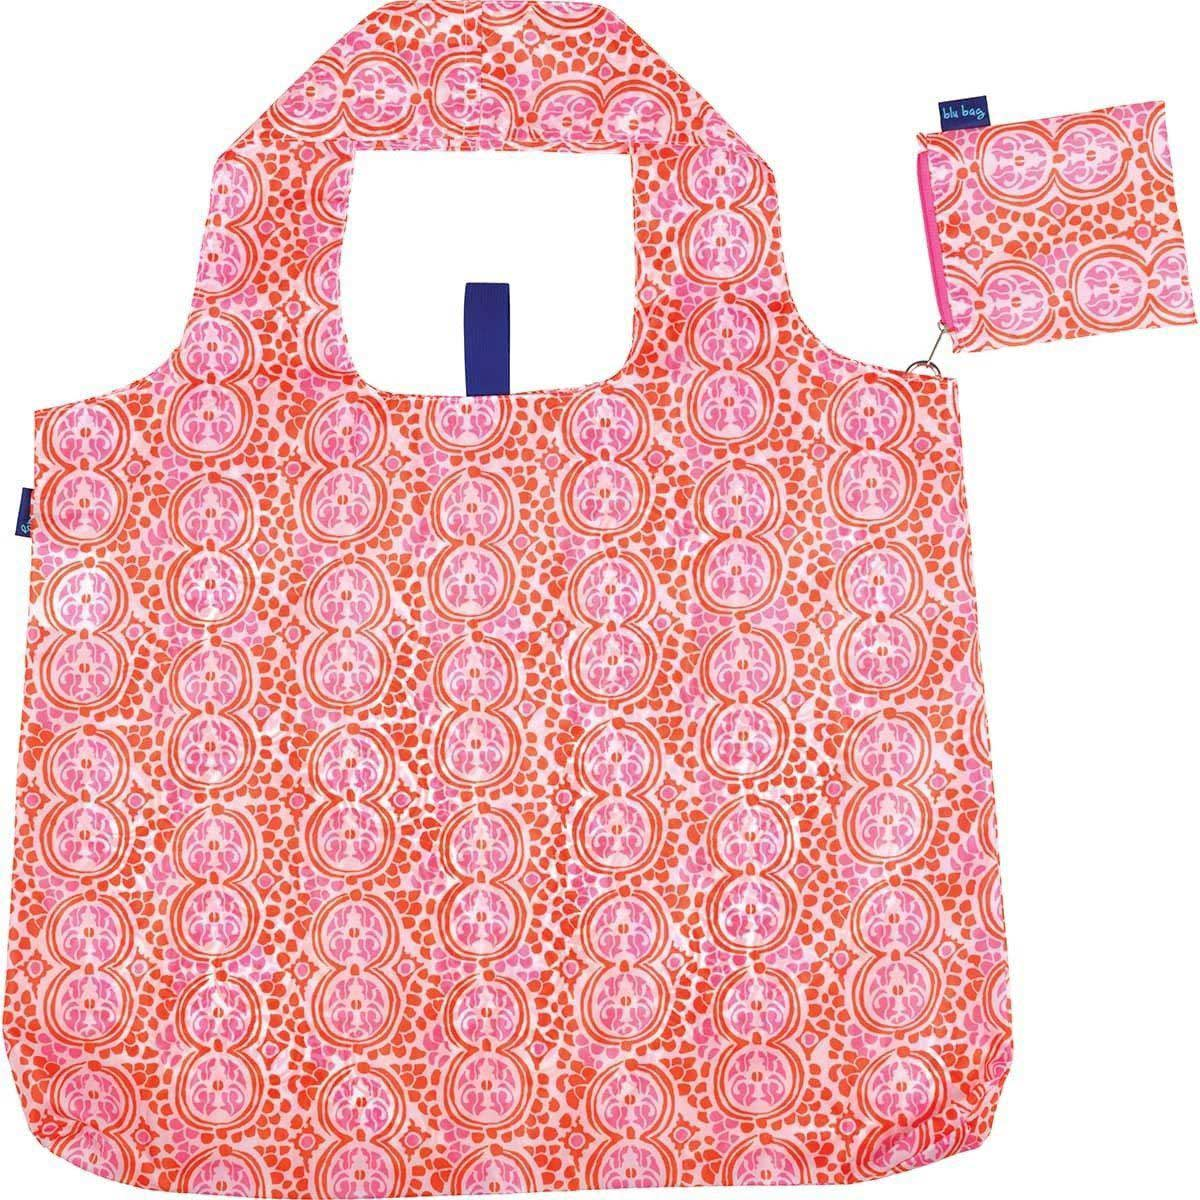 blu bag reusable shopping bag in pink and orange floral print